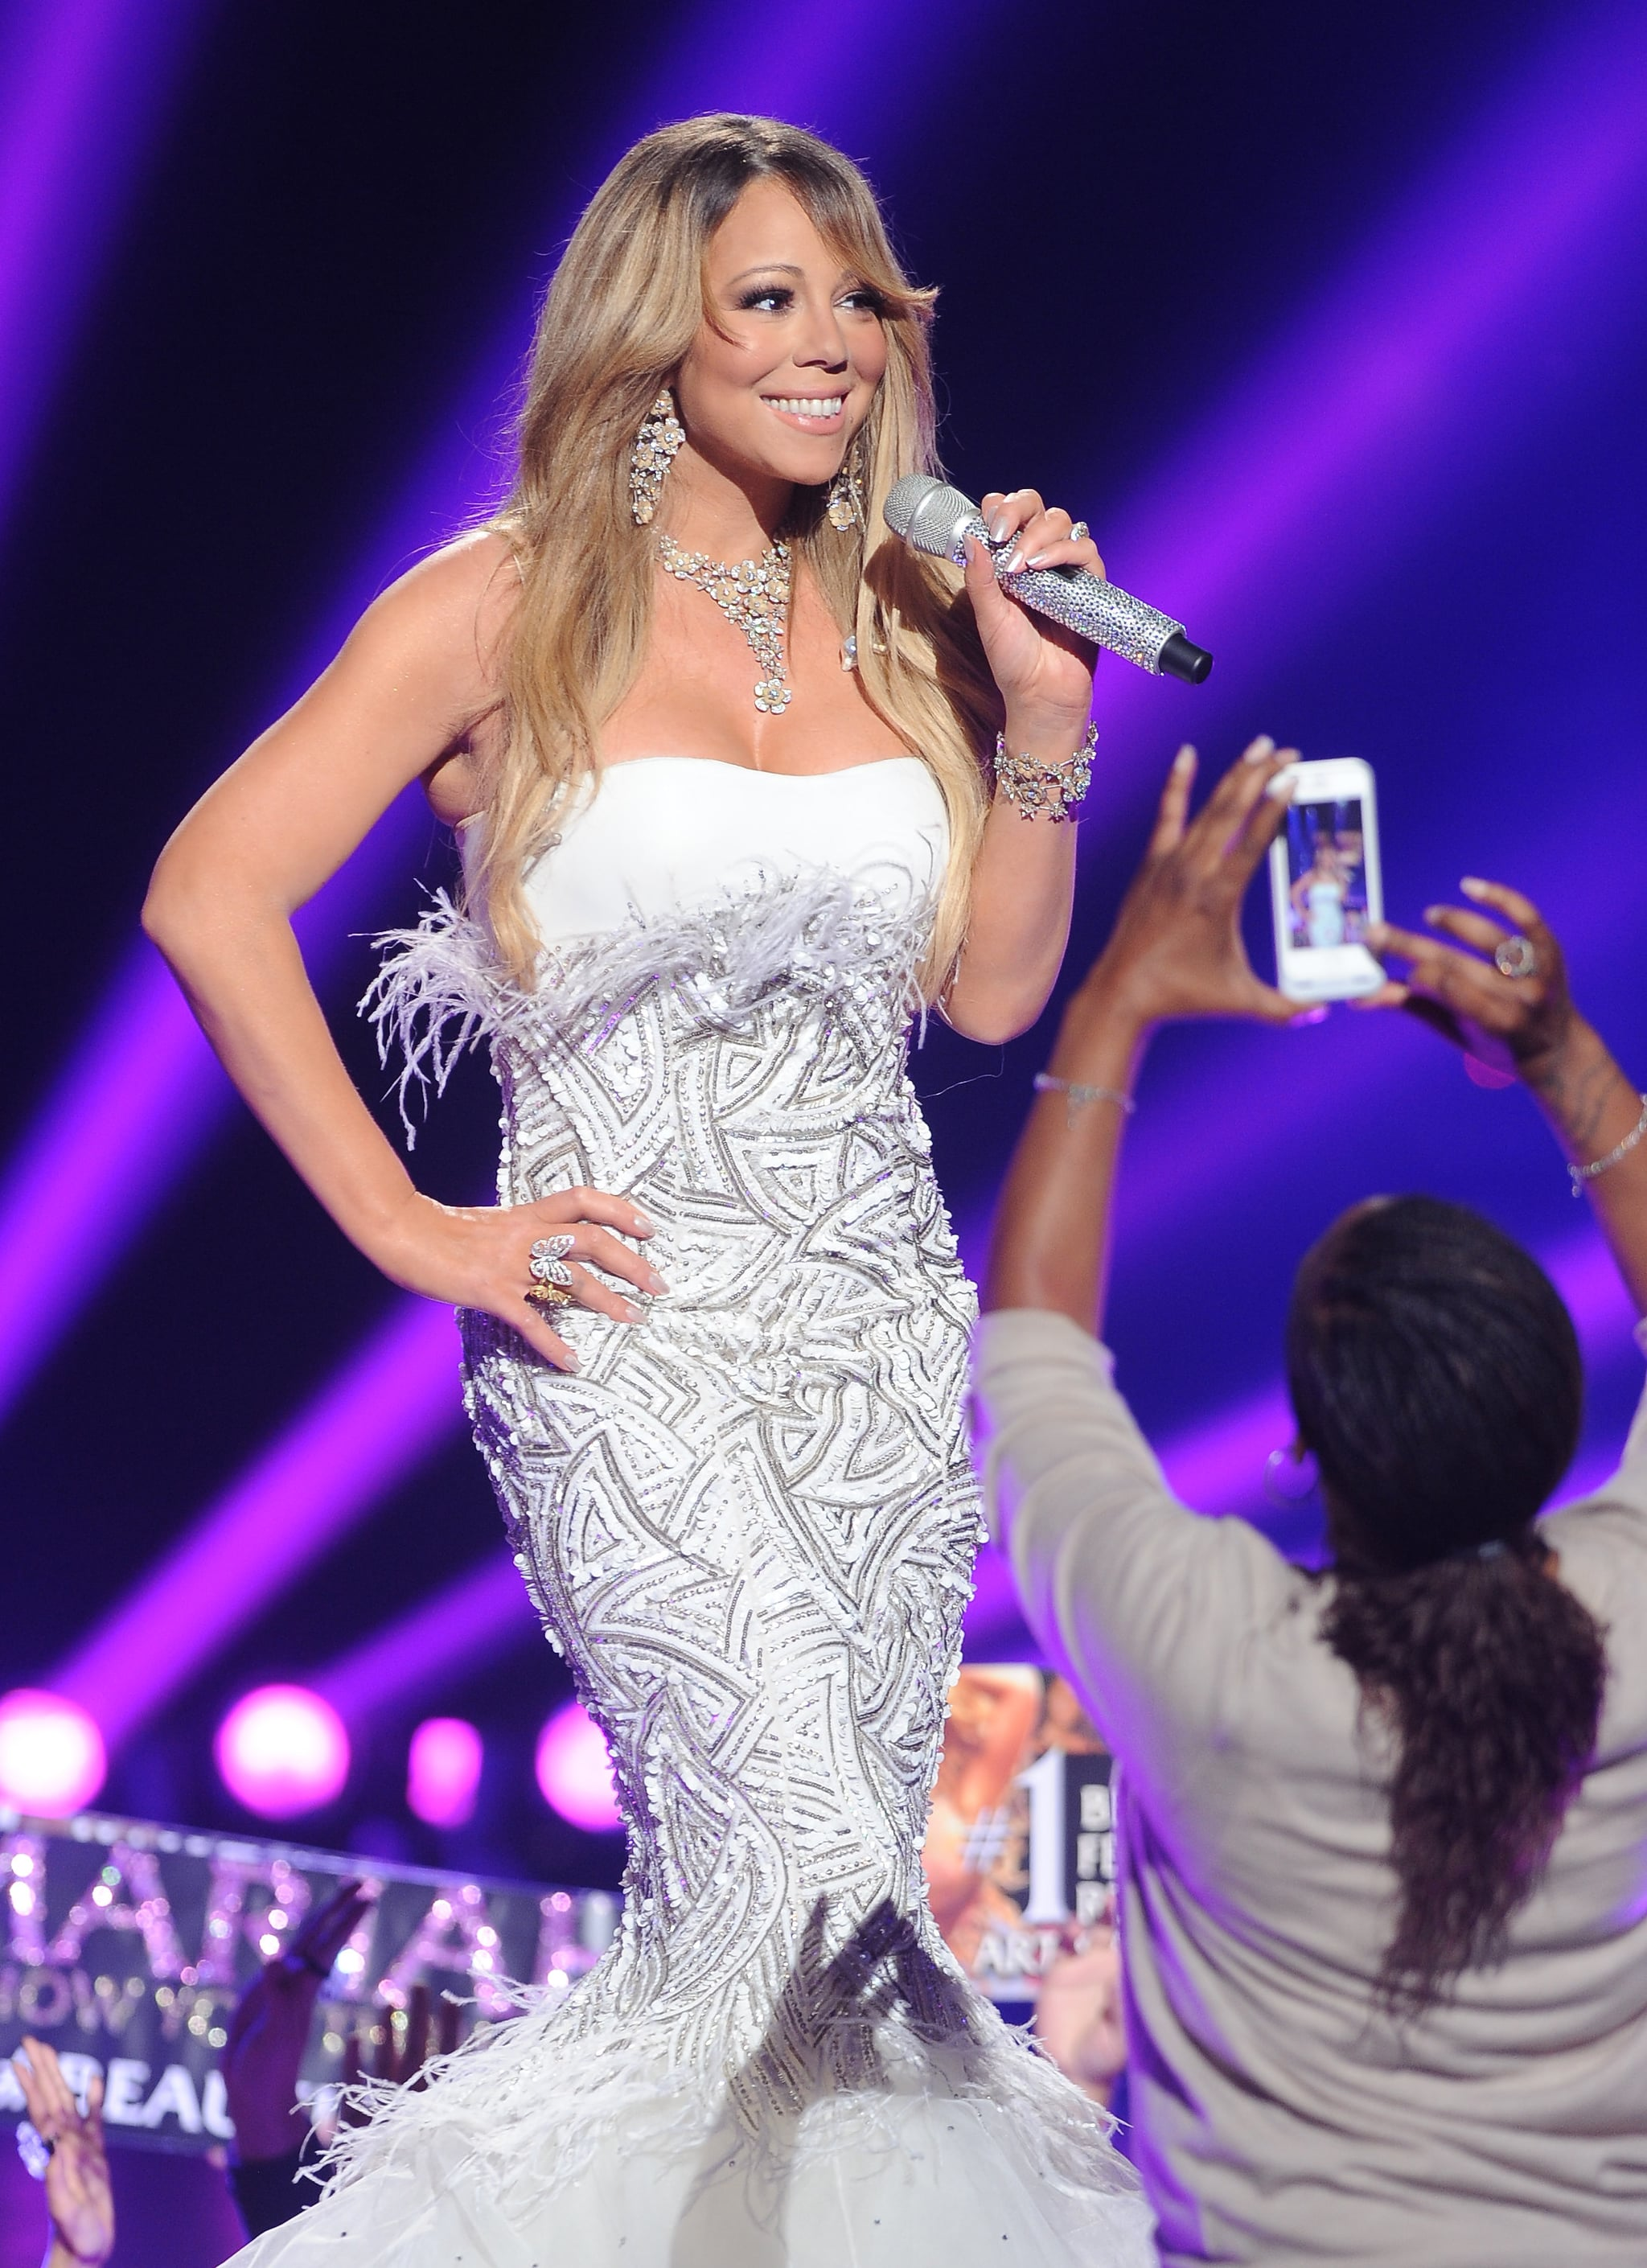 Mariah Carey posed for a fan photo.